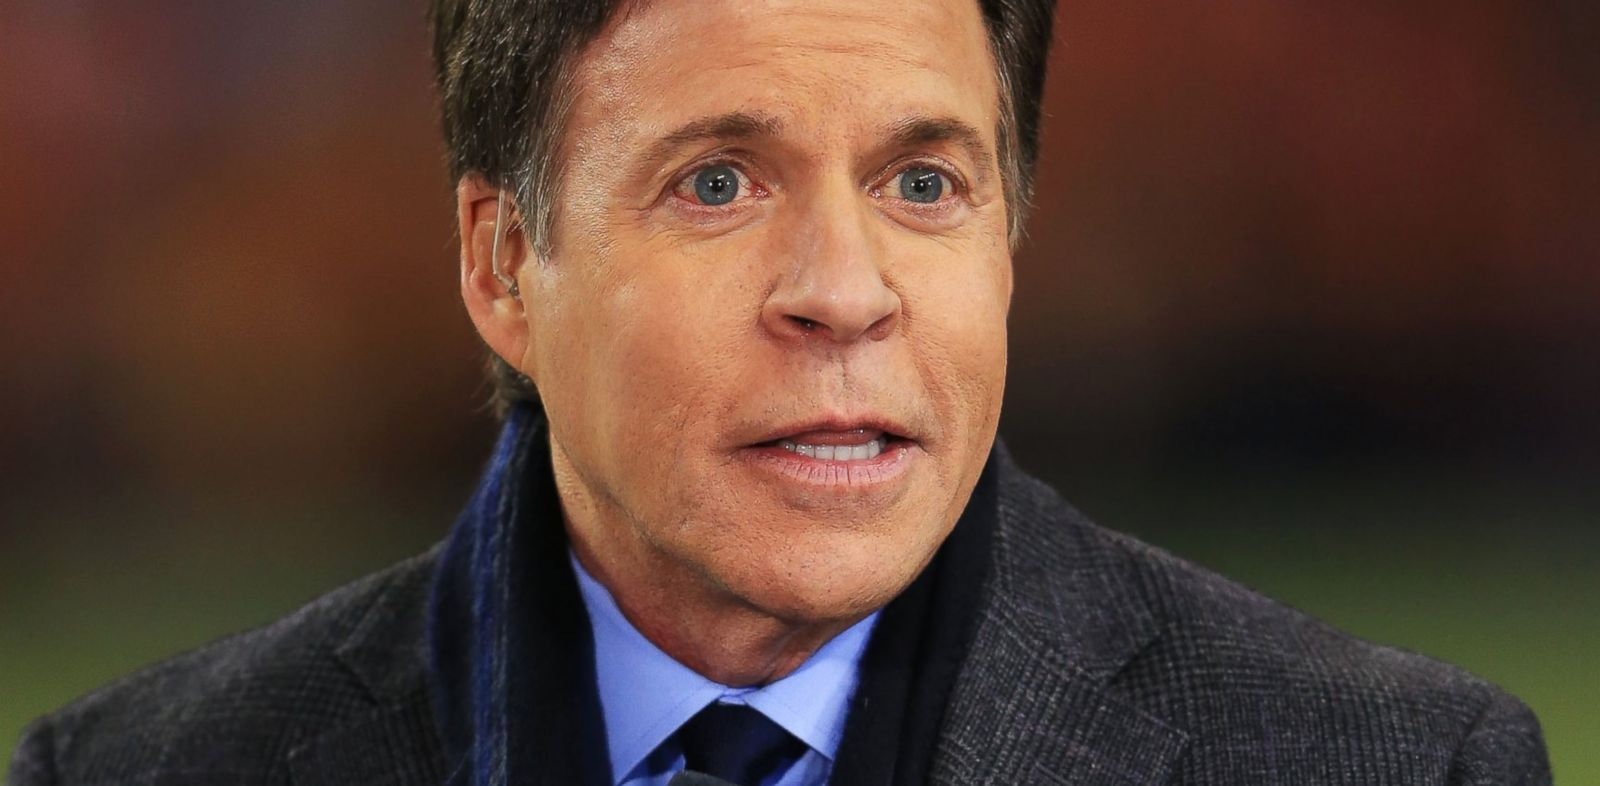 PHOTO: NBC broadcaster Bob Costas now has an infection in both of his eyes, sparking humor from Costas, and a range of internet reaction